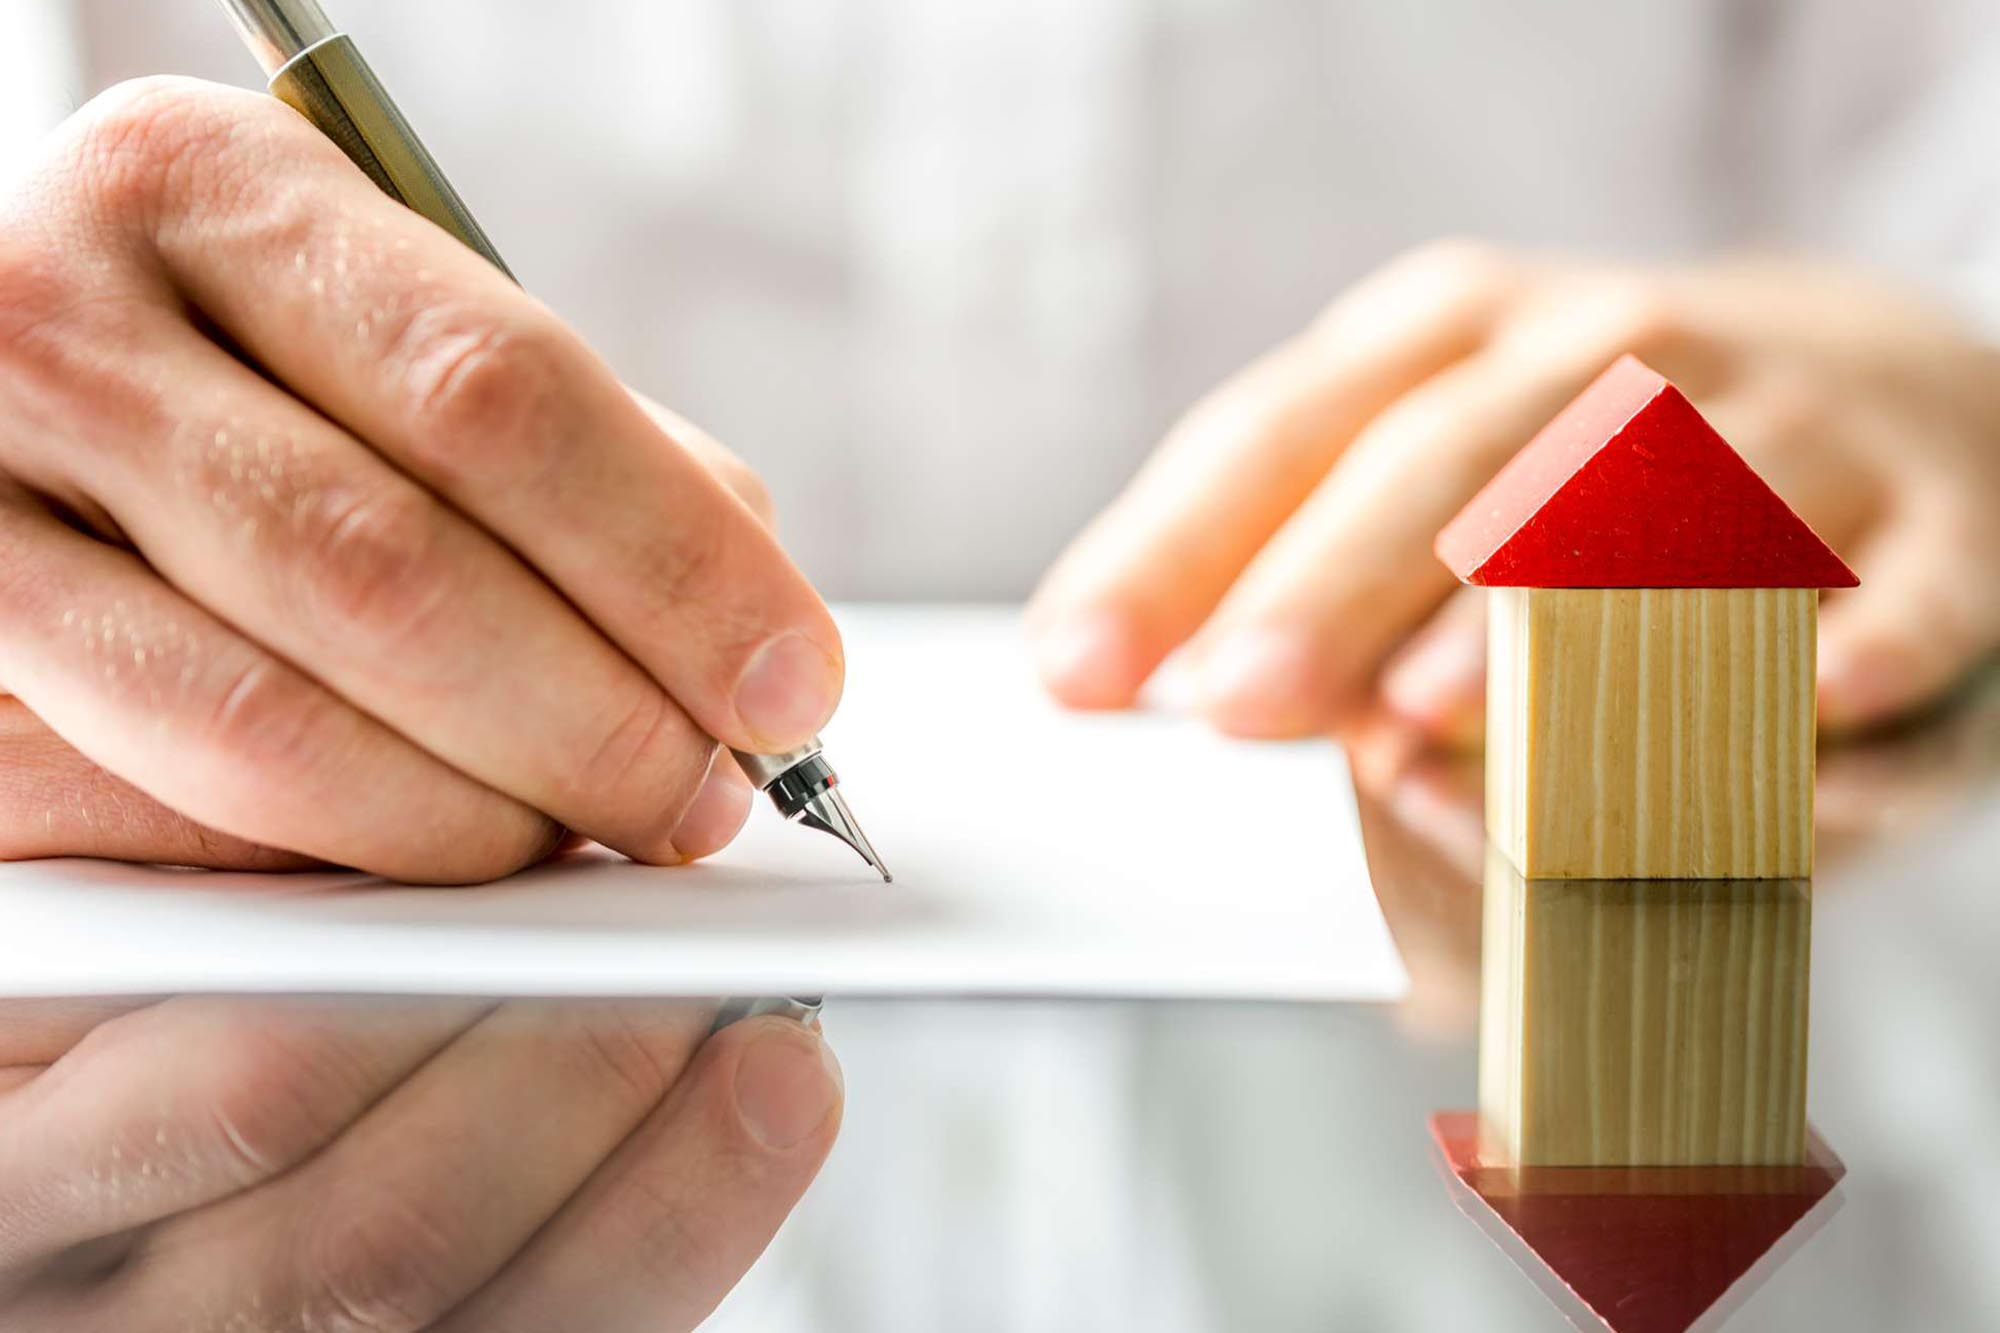 Custom Lease Agreements Can Help Set You Up For Success